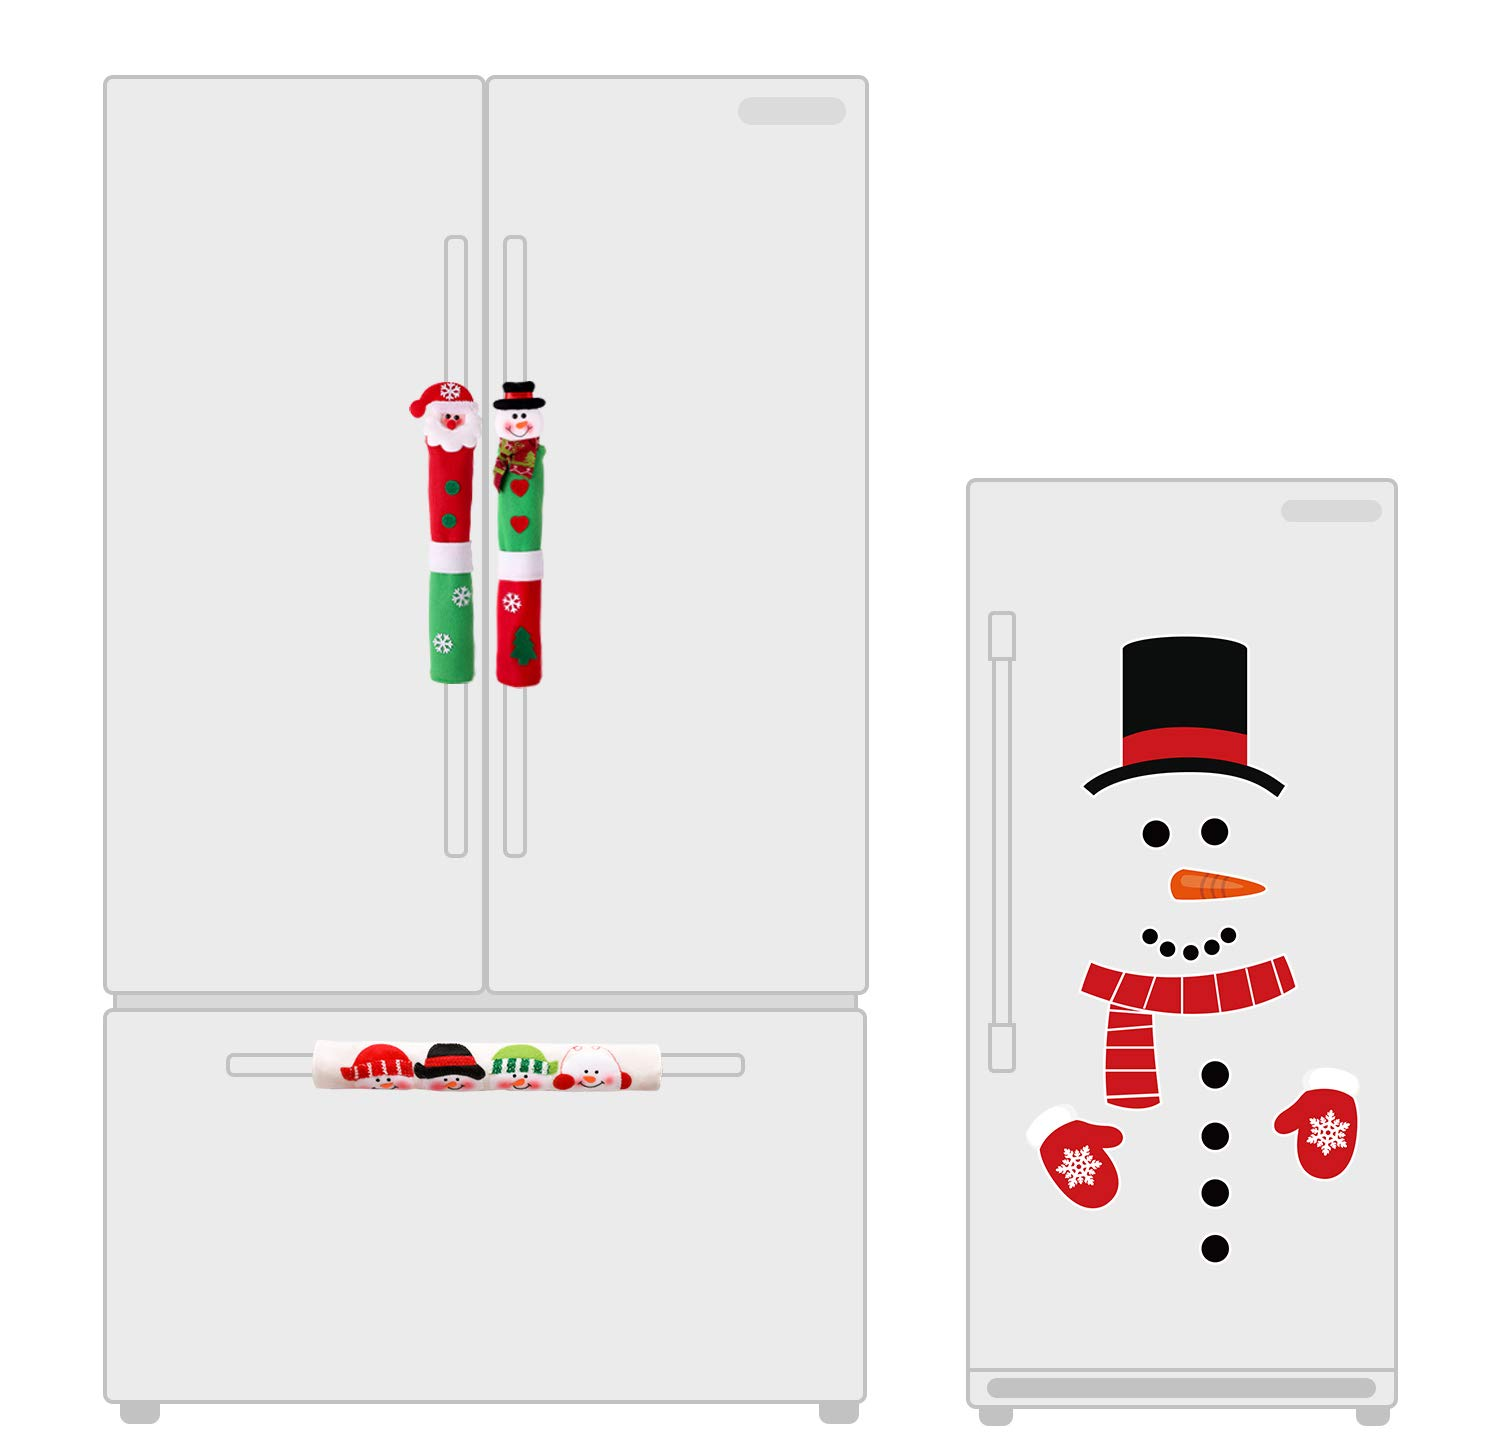 jollylife Christmas Decorations Set-Santa Claus/Snowman Handle Covers+Snowman Clings- Kitchen Appliance Decals